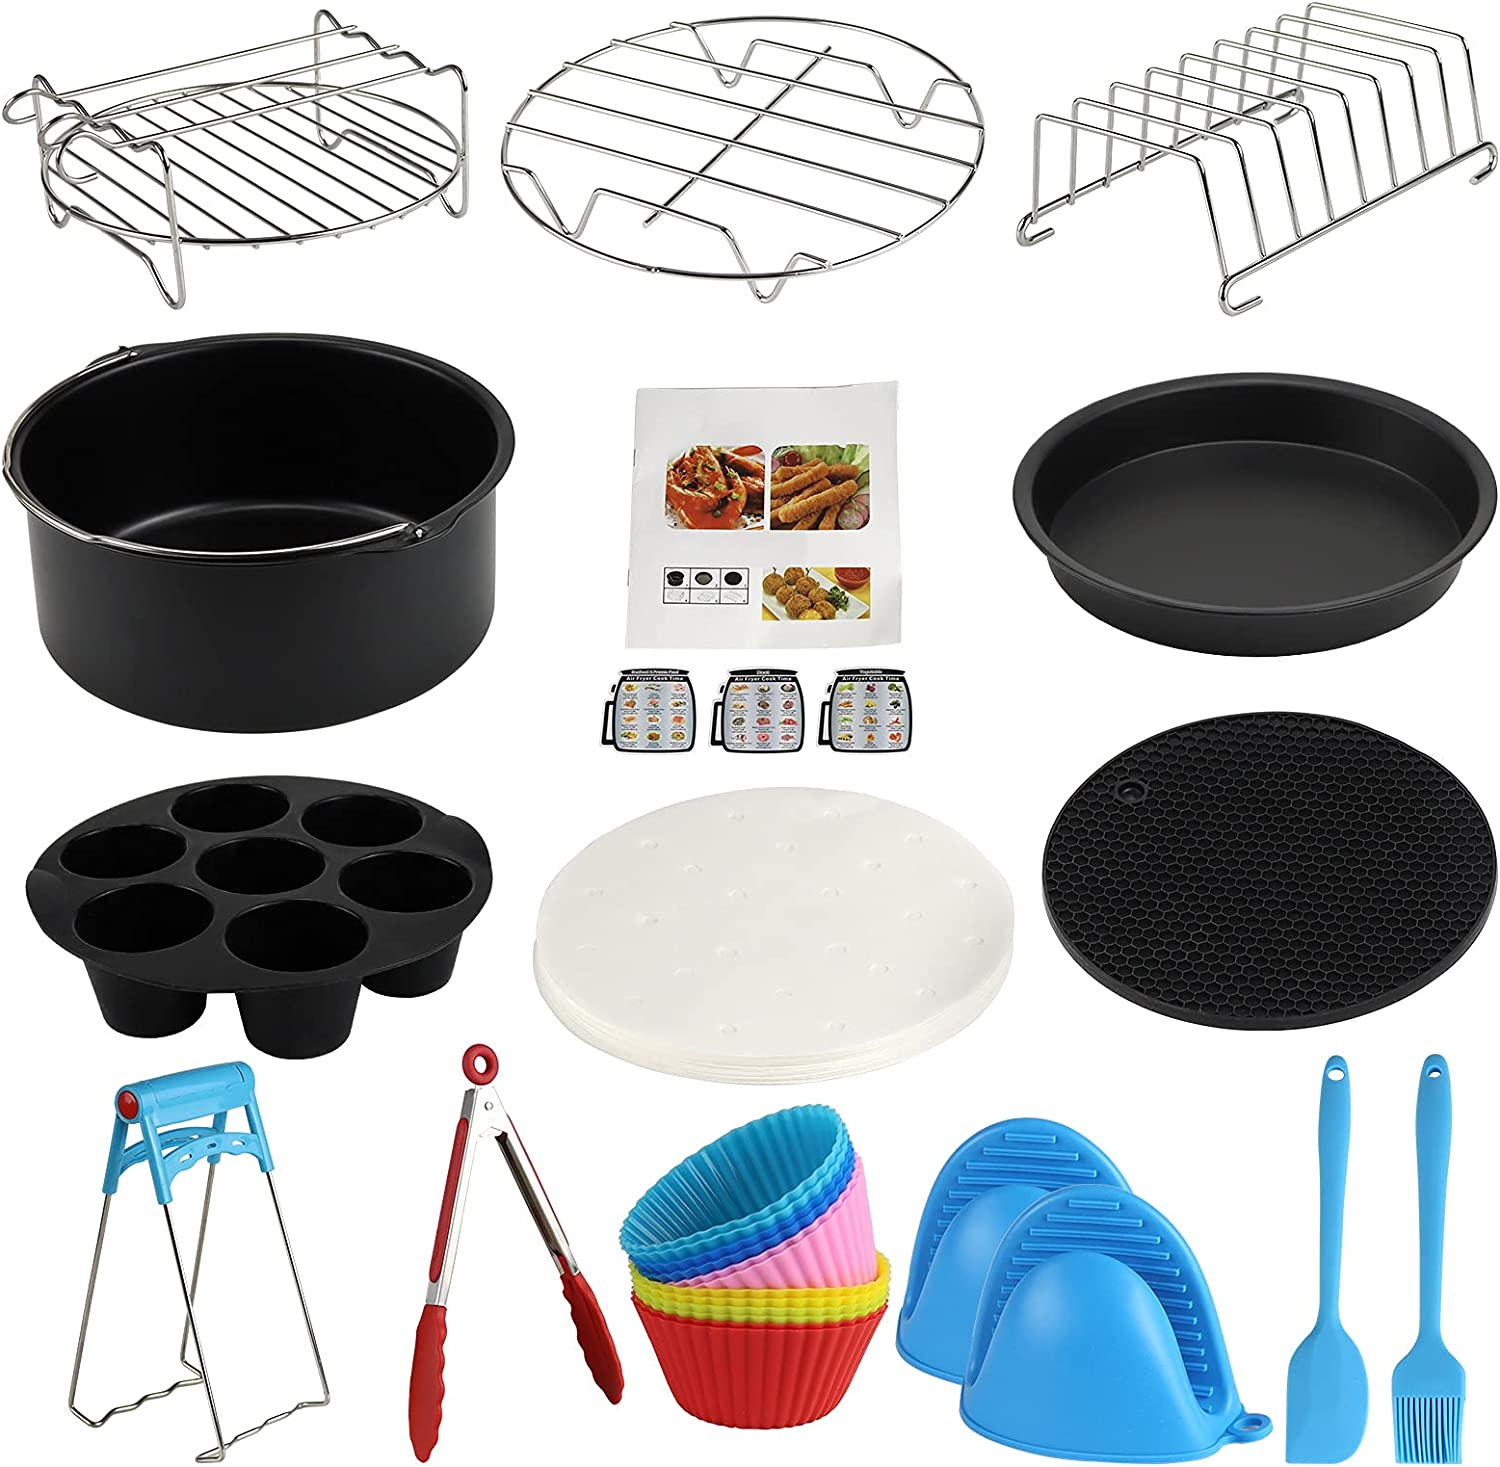 7 Inch XL Air Fryer Accessories, 13Pcs Deep Fryer Accessories with Recipe Cookbook for Phill-ip Nu.wave Go.wise Gou.rmia Ni.nja Dash Air Fryer Fits All3.2QT - 5.8QT Air Fryer